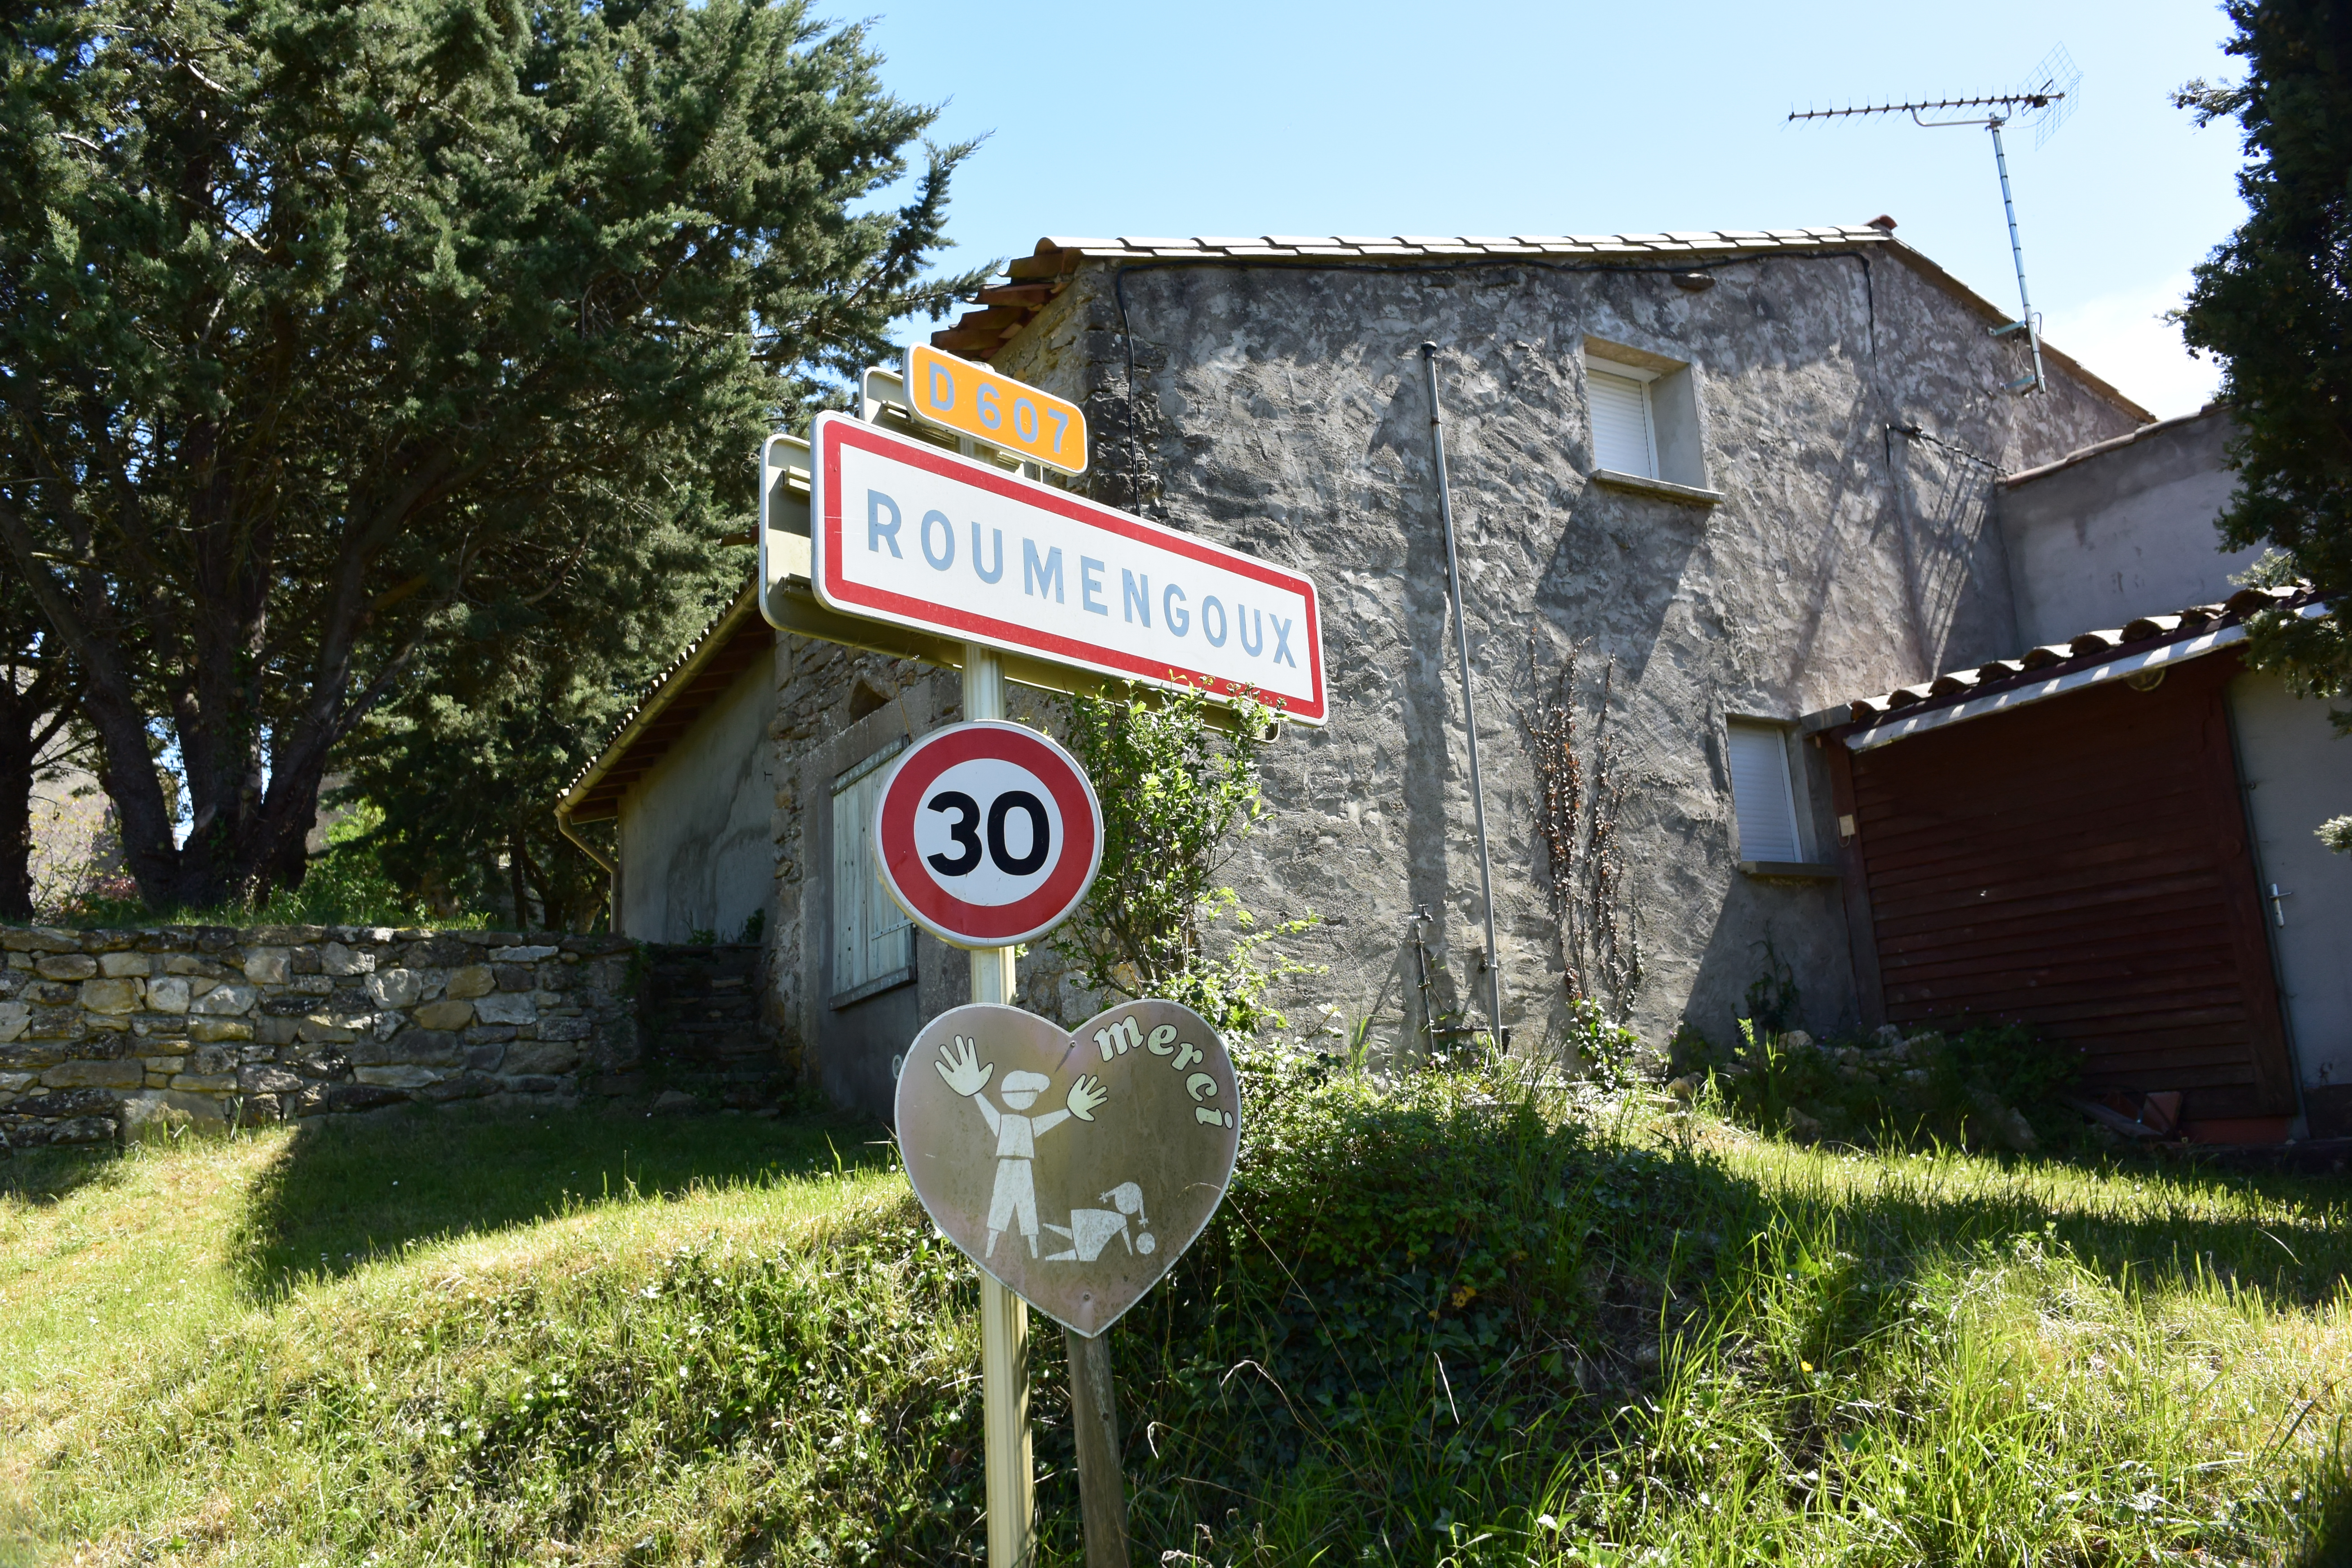 Street Sign for Roumengoux